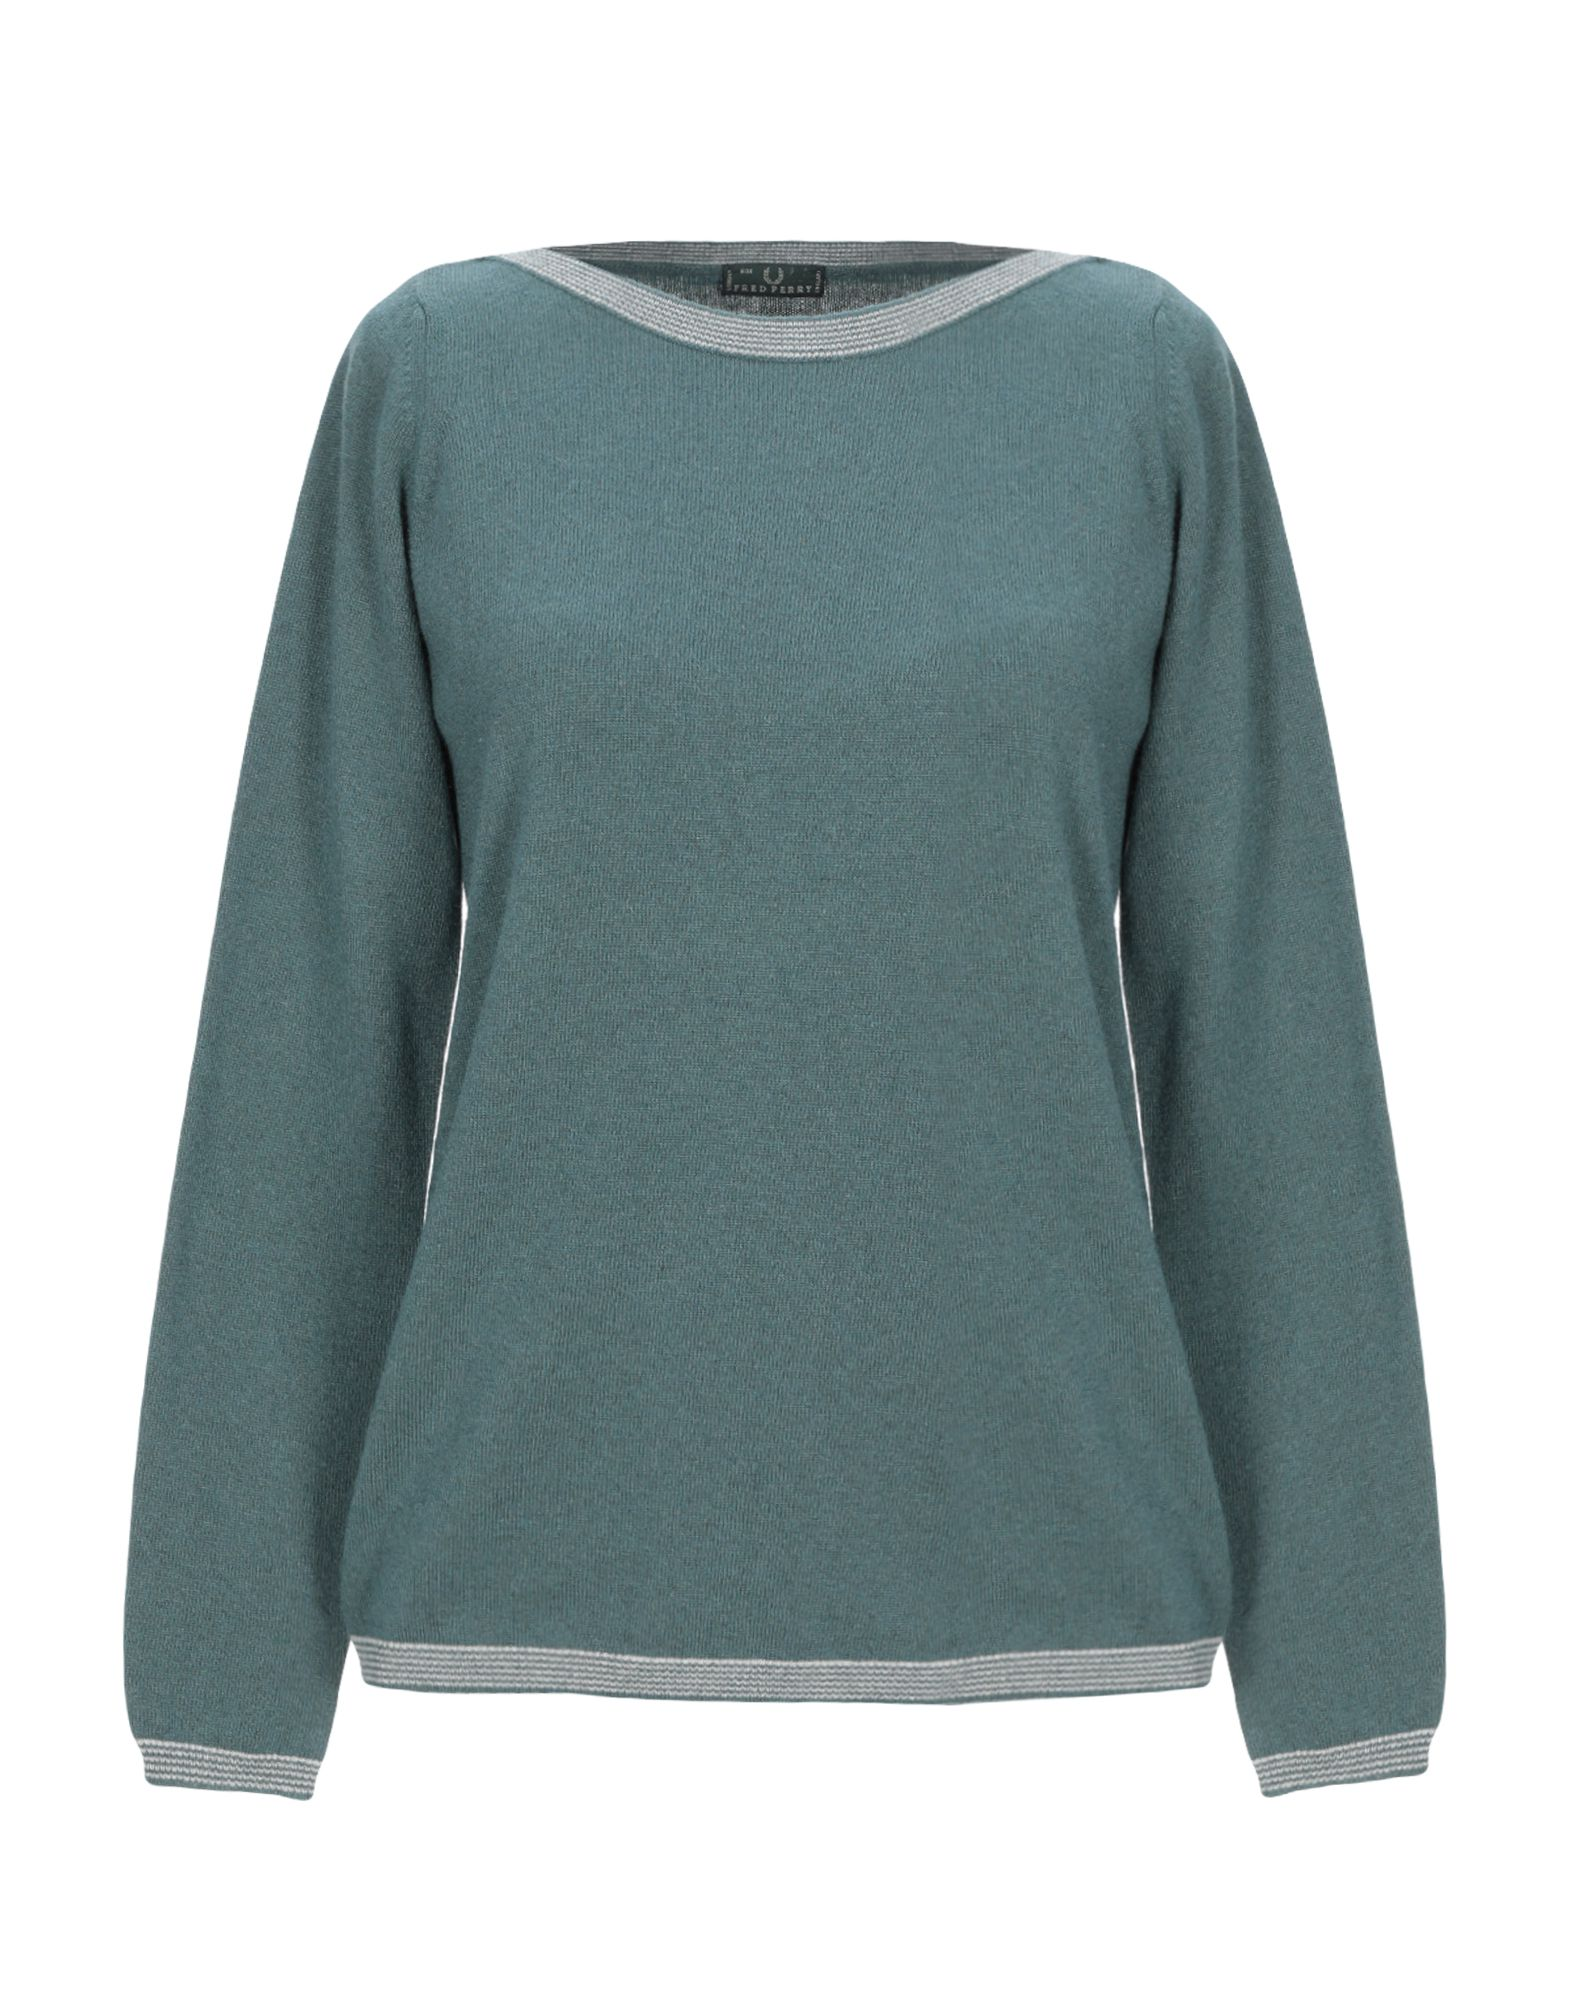 Pul r r r Frosso Perry donna - 39981269LH 306